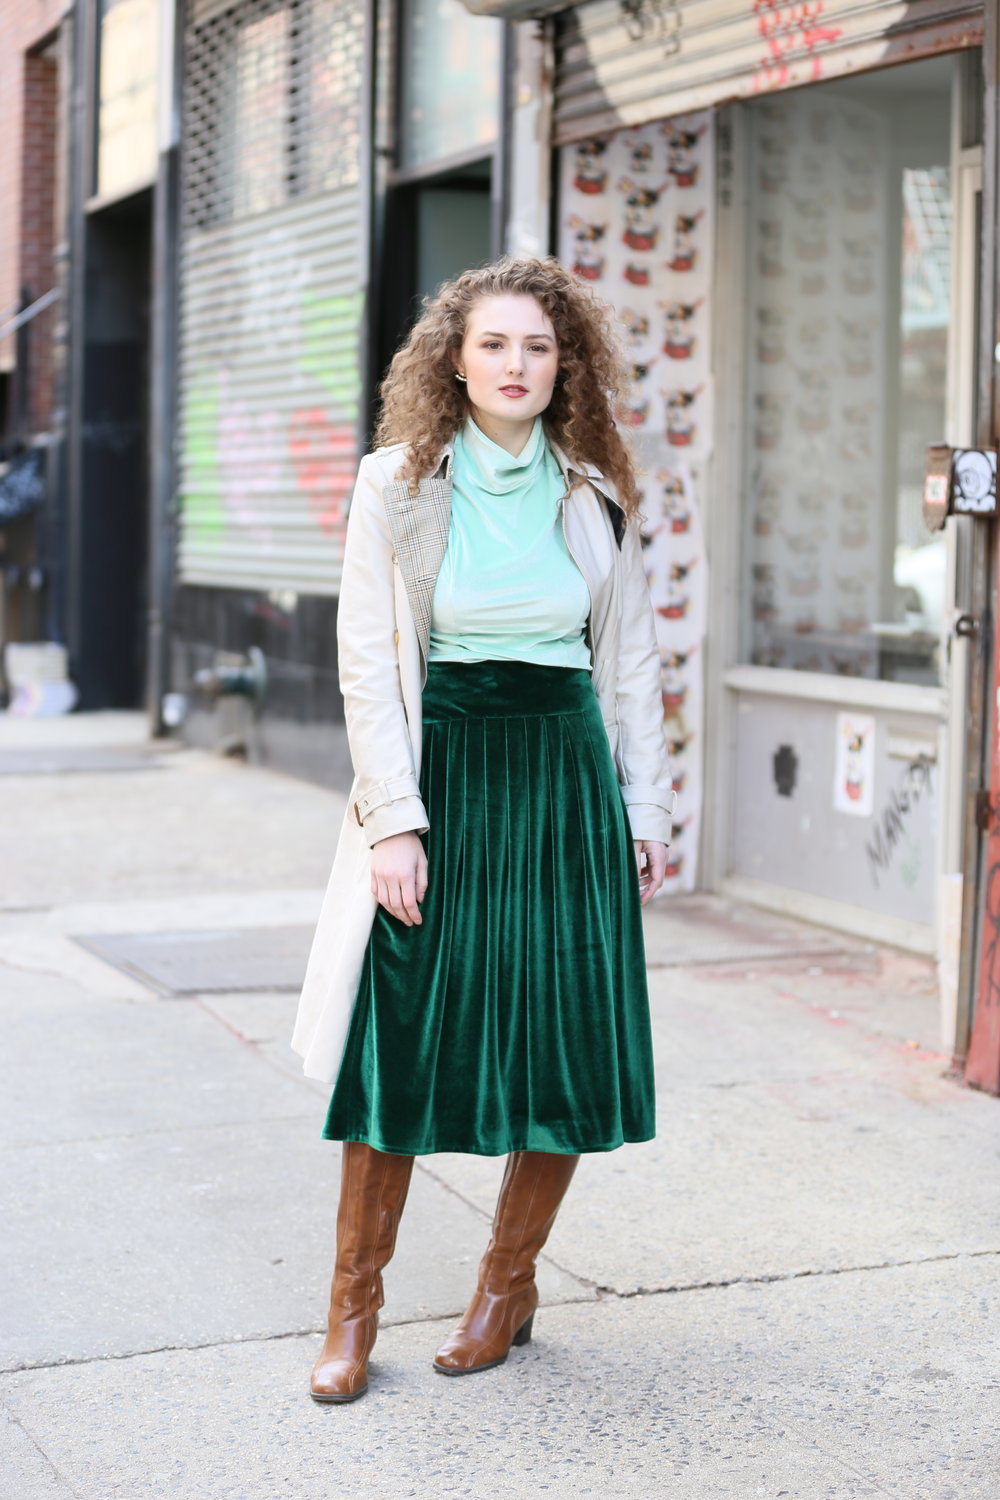 Go Green. - The Le city-chic collection focuses on plush velvet pieces that are soft yet sleek and have that indie-brand cool.Shop Le City Chic Velvet Skirt (Vert)Shop Velvet Cowl Neck Top Mint